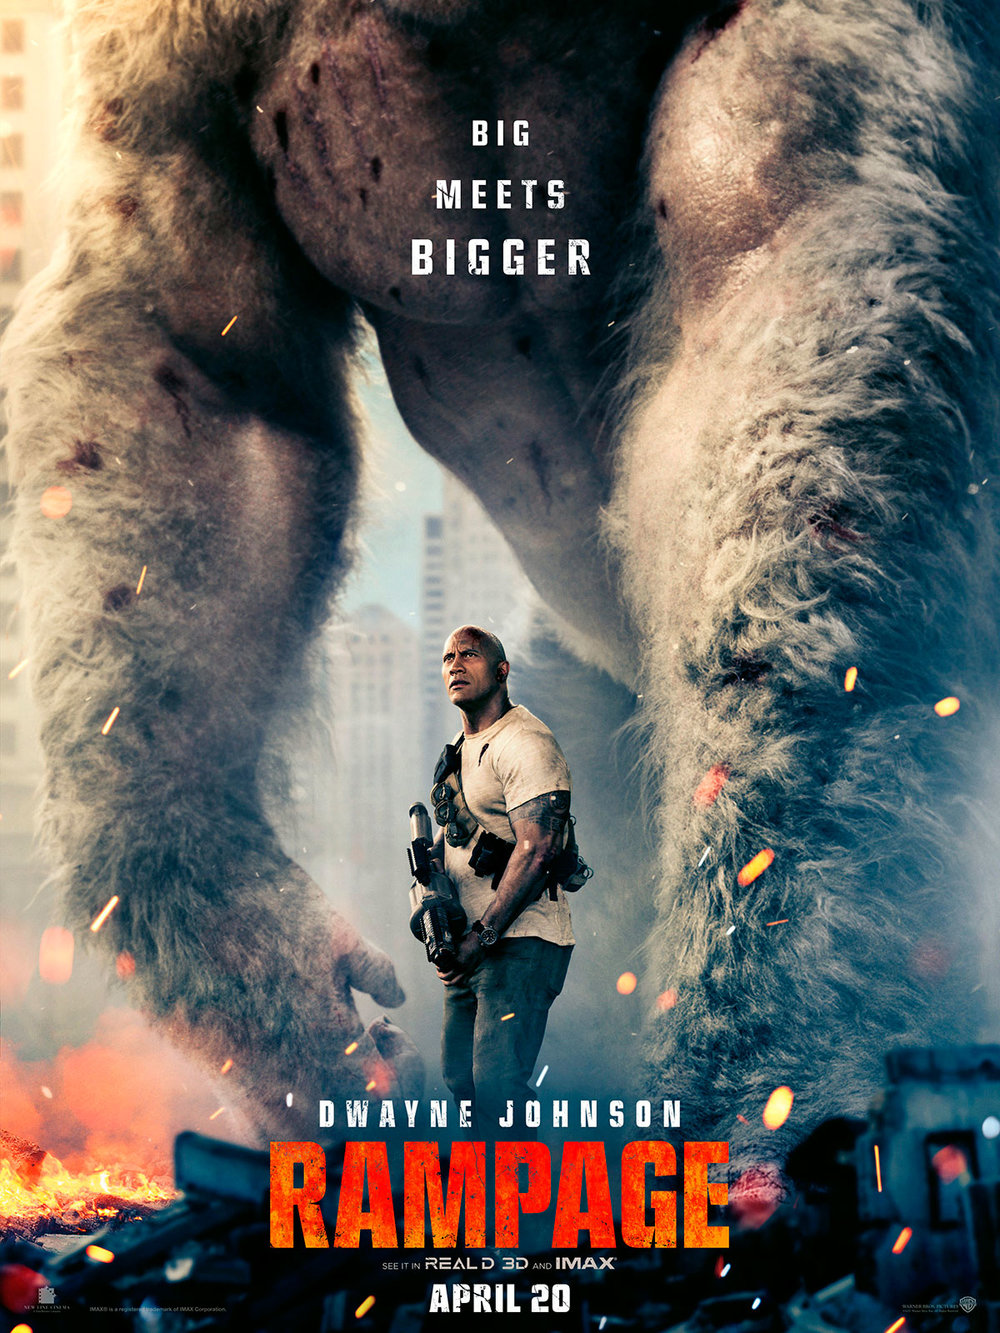 Rampage (2018) - Directed by: Brad PeytonStarring: Dwayne Johnson, Naomie Harries, Malin Akerman, Jeffrey Dean MorganRated: PG-13 for Sequences of Violence, Action and Destruction, Brief Language, and Crude GesturesRunning Time: 1 h 47 mTMM Score: 1.5 stars out of 5STRENGTHS: Visual EffectsWEAKNESSES: Writing, Directing, Characters